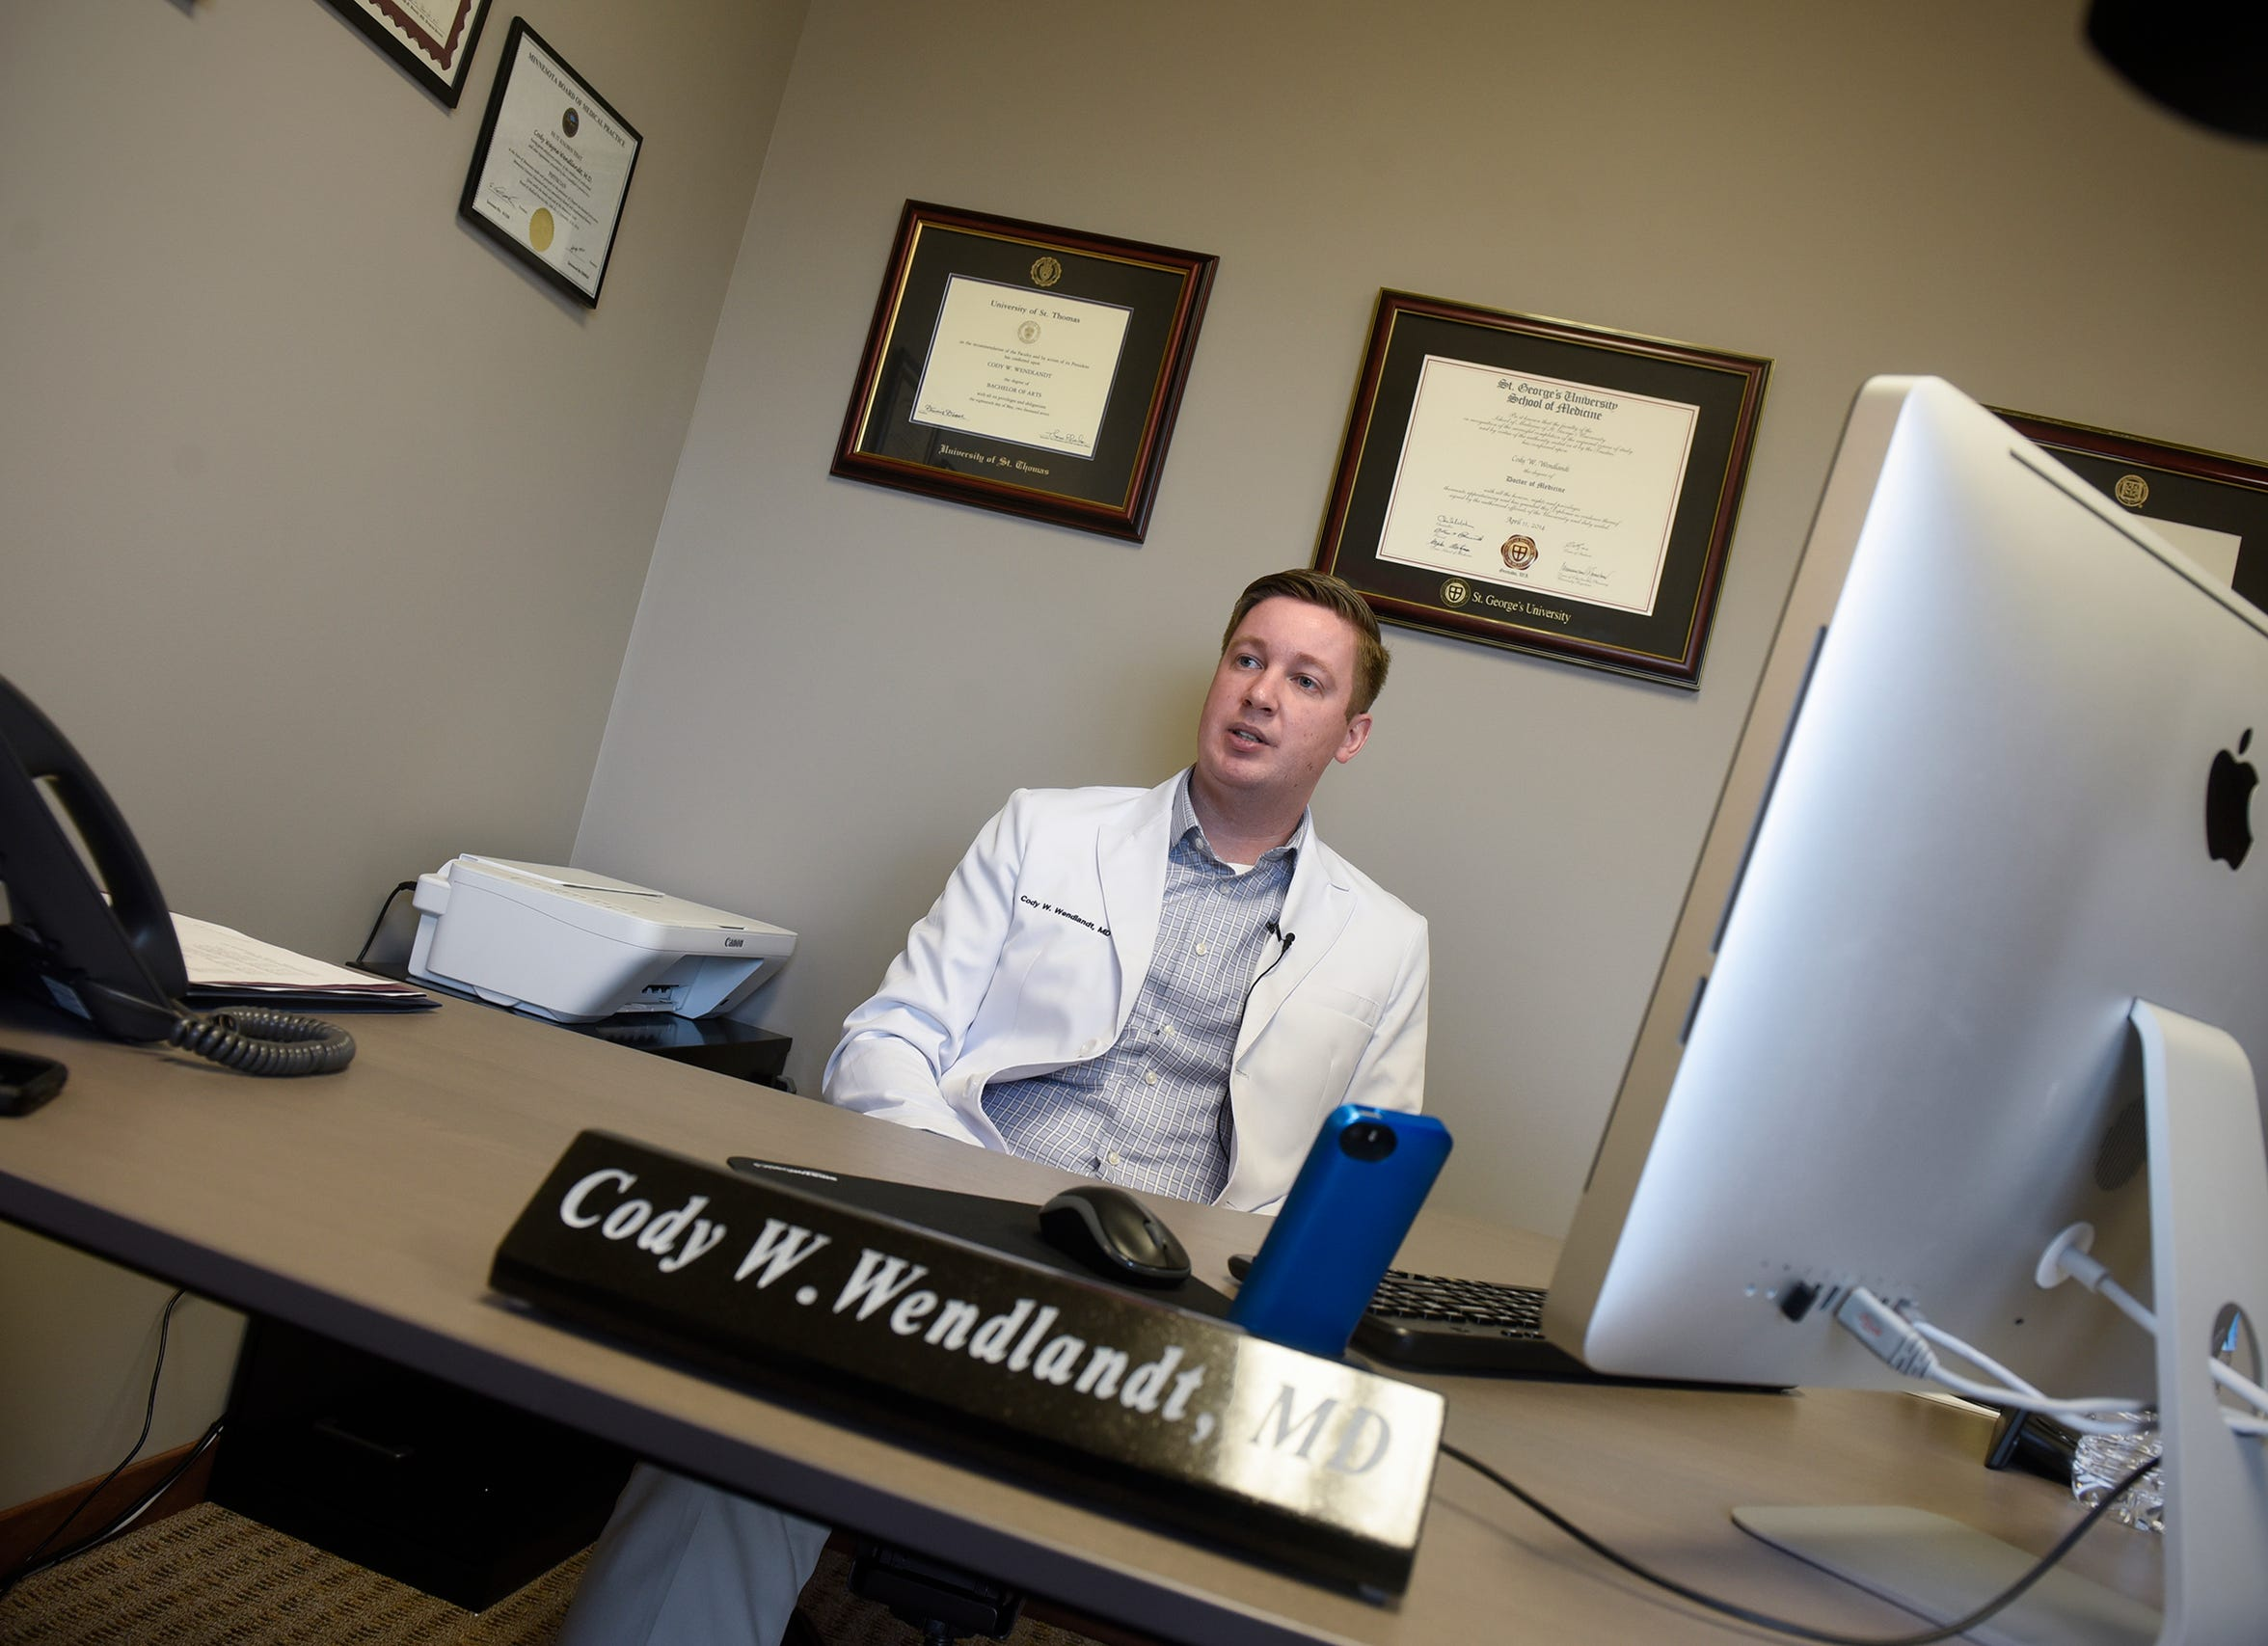 Dr. Cody Wendlandt talks about his practice Monday, Dec. 10, at Sartell Family Medicine in Sartell.